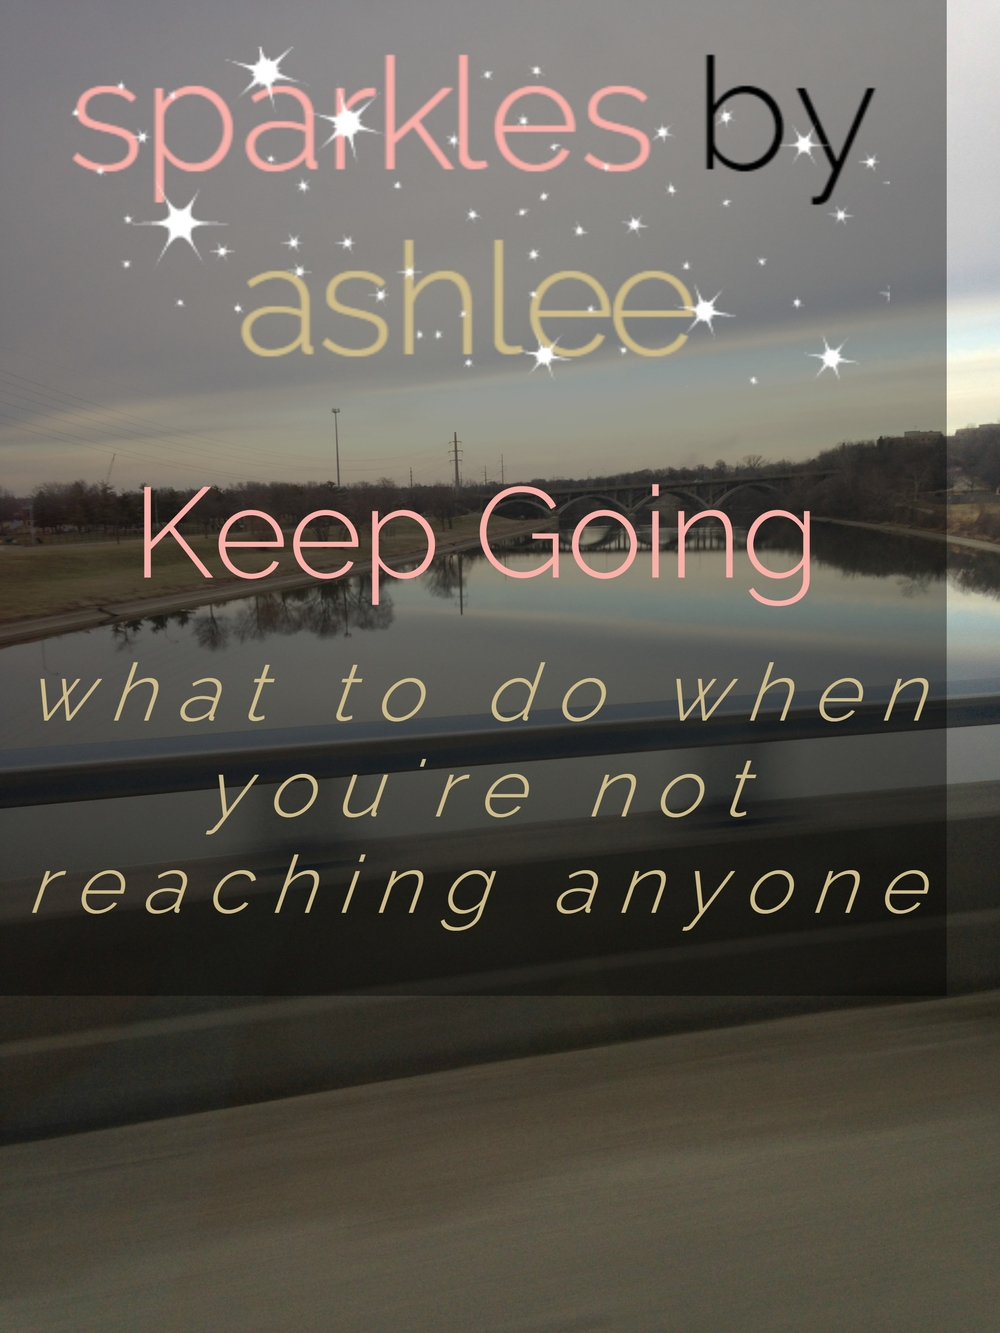 Keep-Going-Sparkles-by-Ashlee.jpg